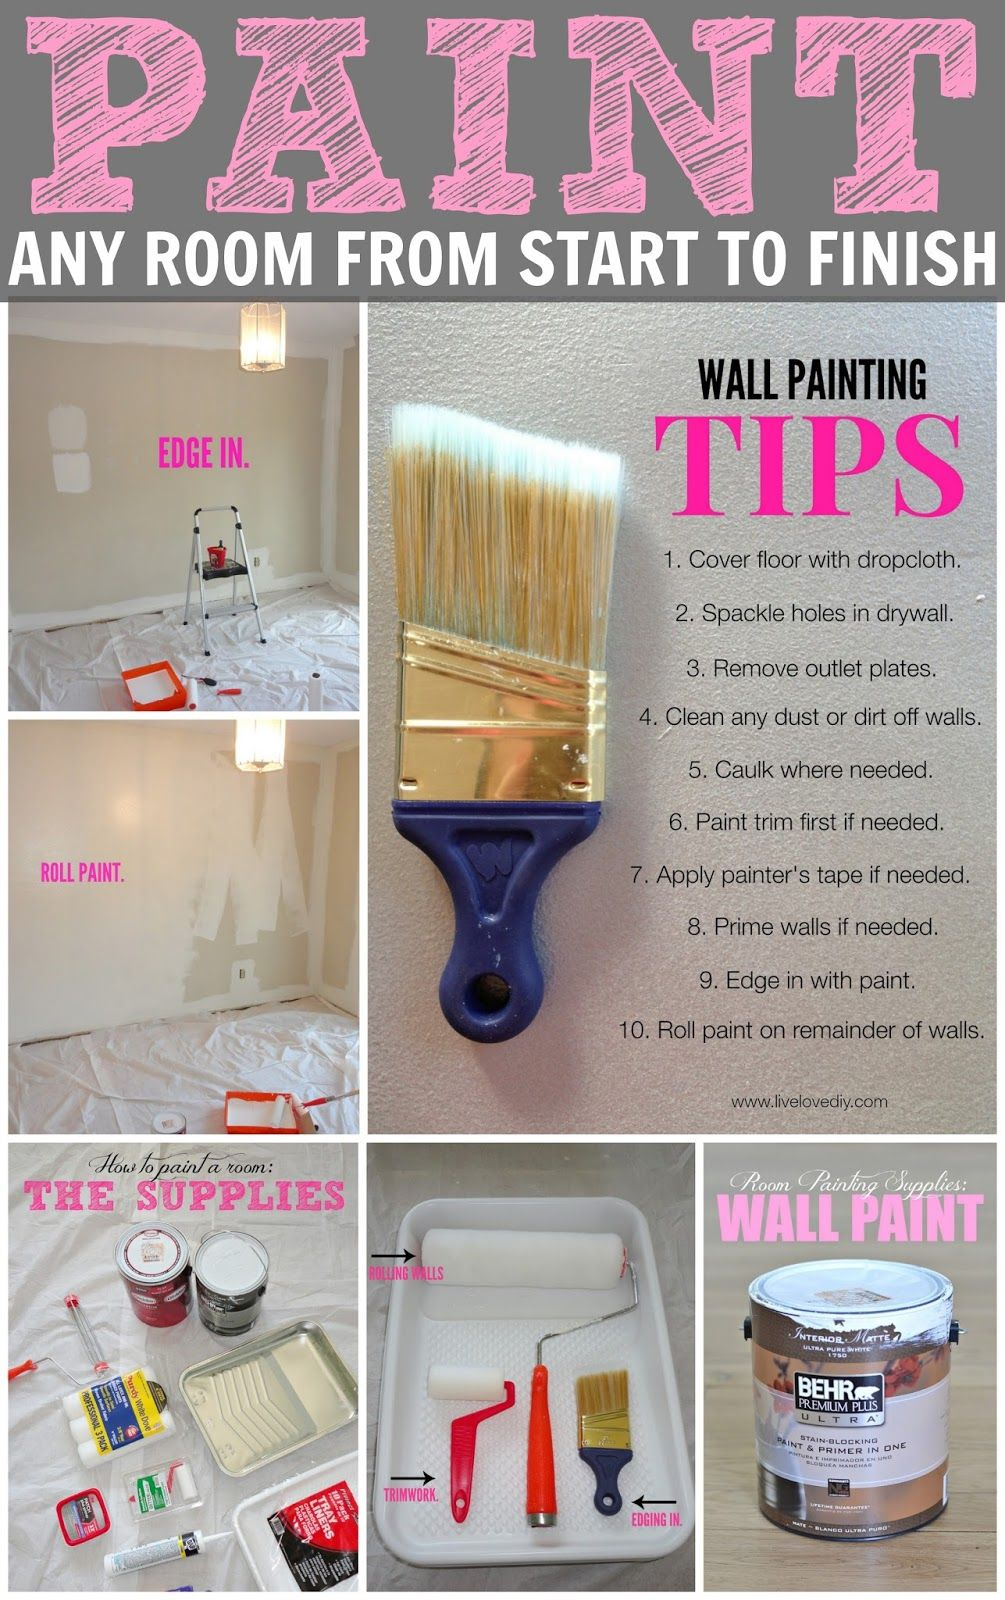 How To Paint a Room (LiveLoveDIY)